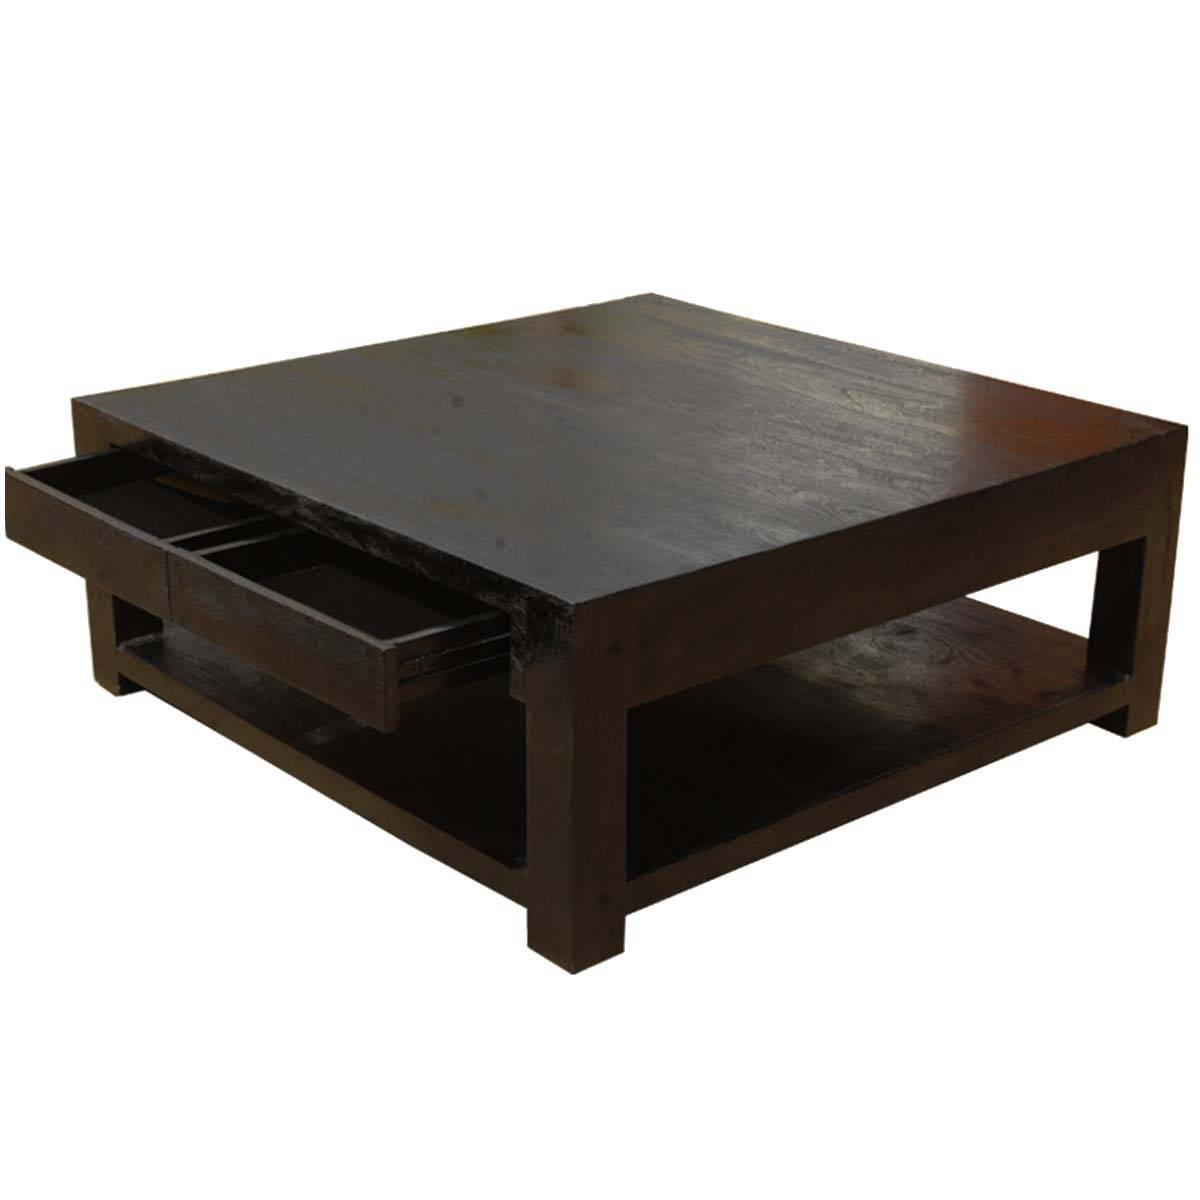 Rustic Coffee Tables intended for Large Square Wood Coffee Tables (Image 26 of 30)